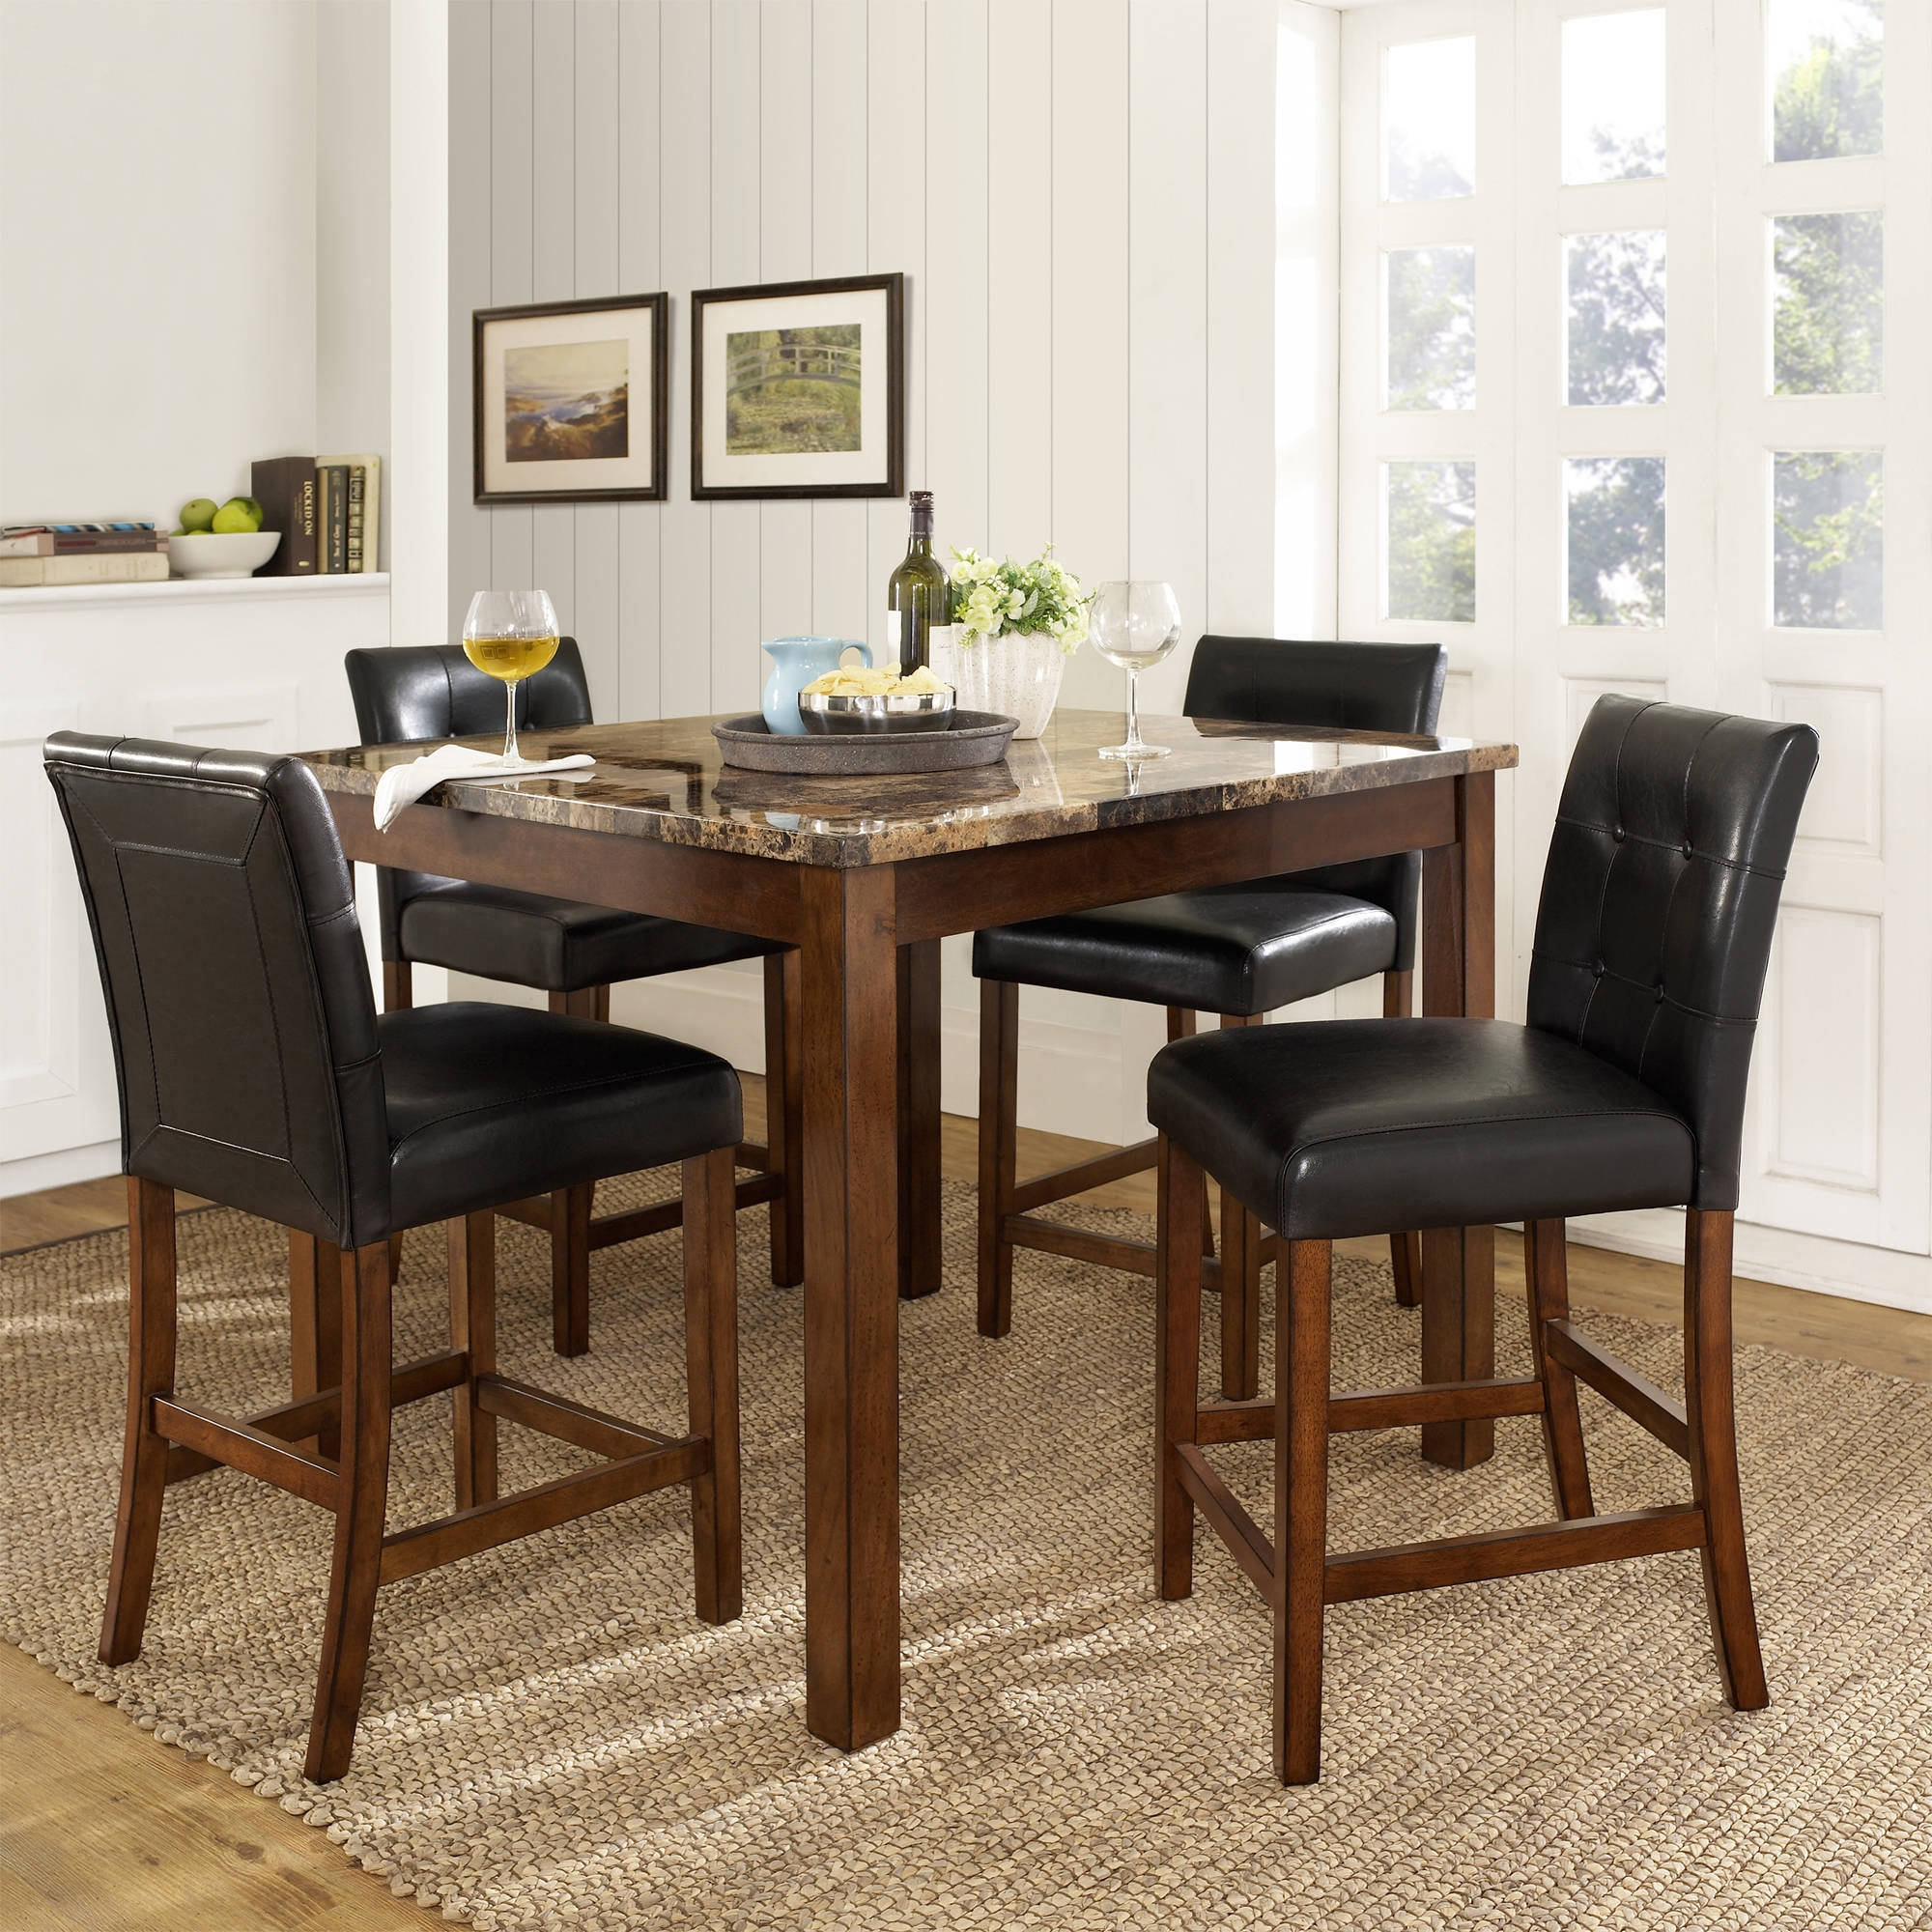 dorel living andover 5 piece counter height dining set multiple colors walmart